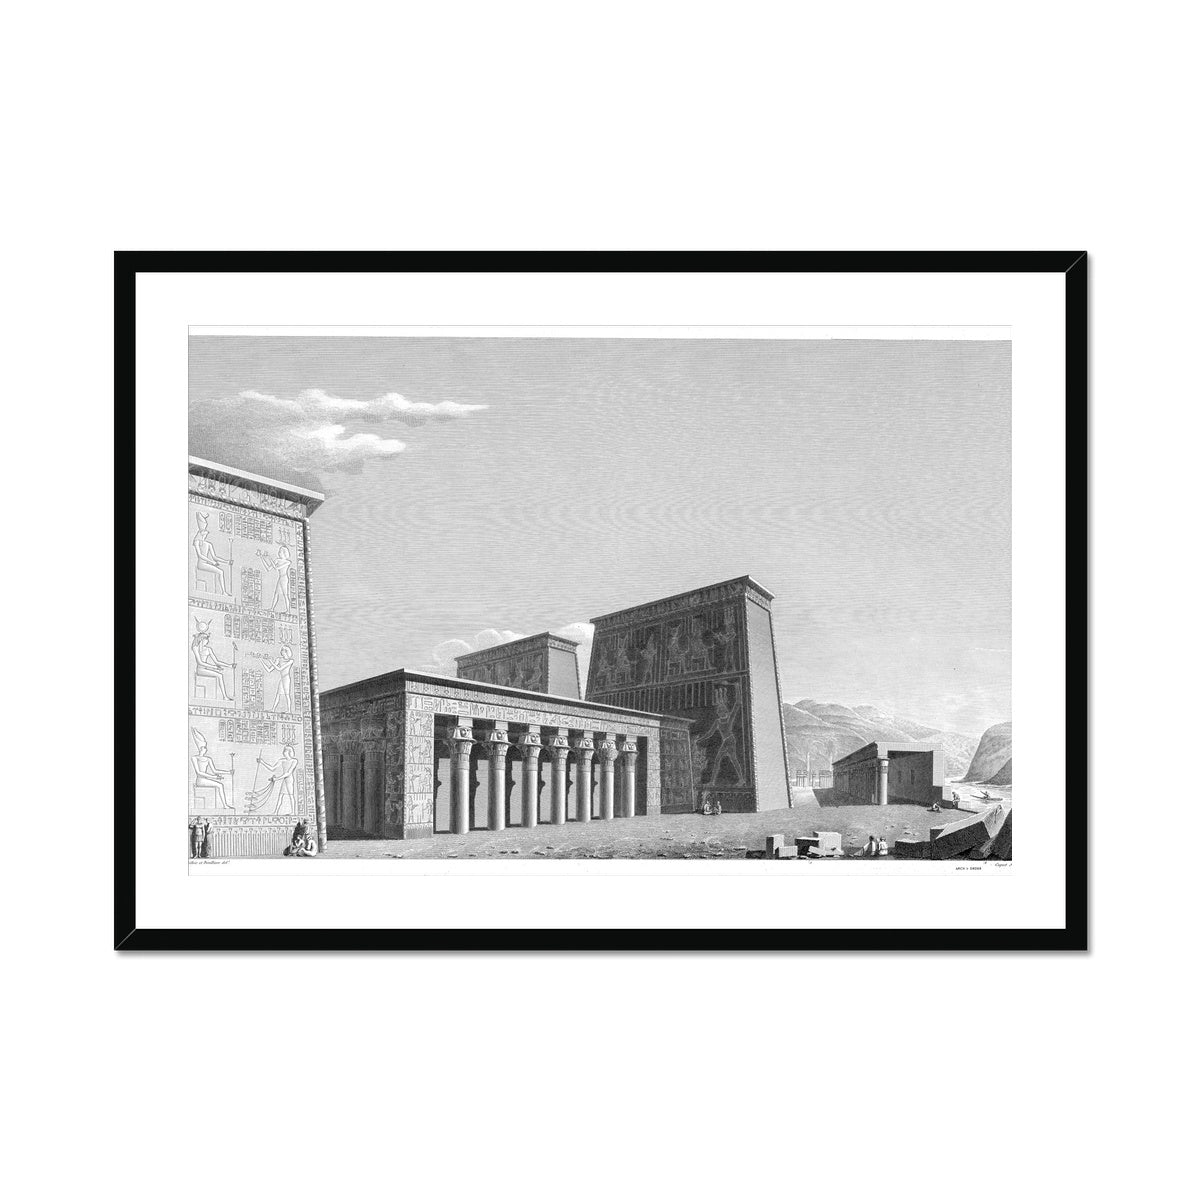 The Temple of Isis Perspective from the West - Philae Egypt -  Framed & Mounted Print